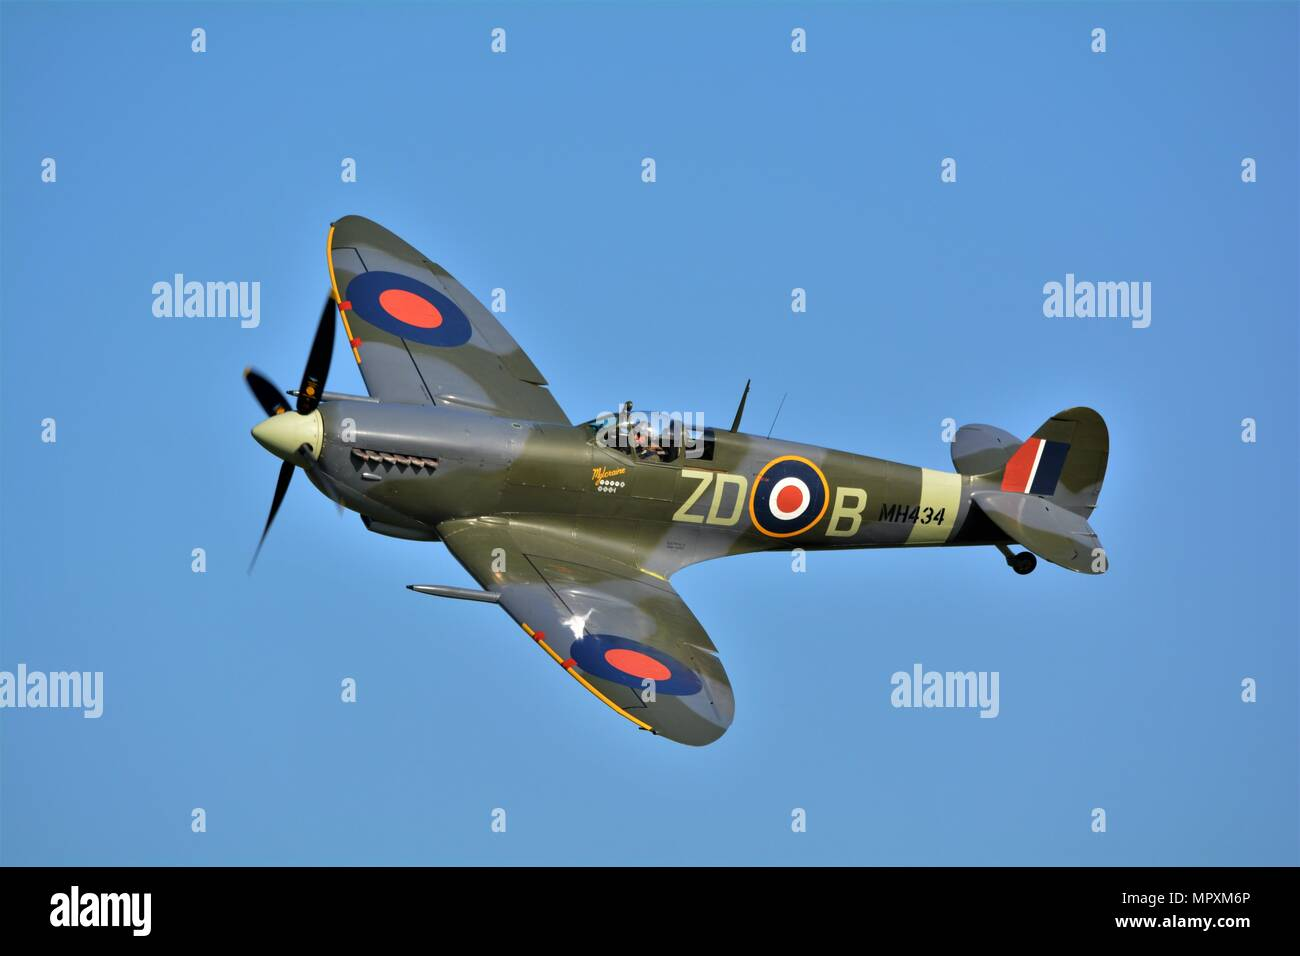 Spitfires fighter plane world war 2 famous aircraft flying ...